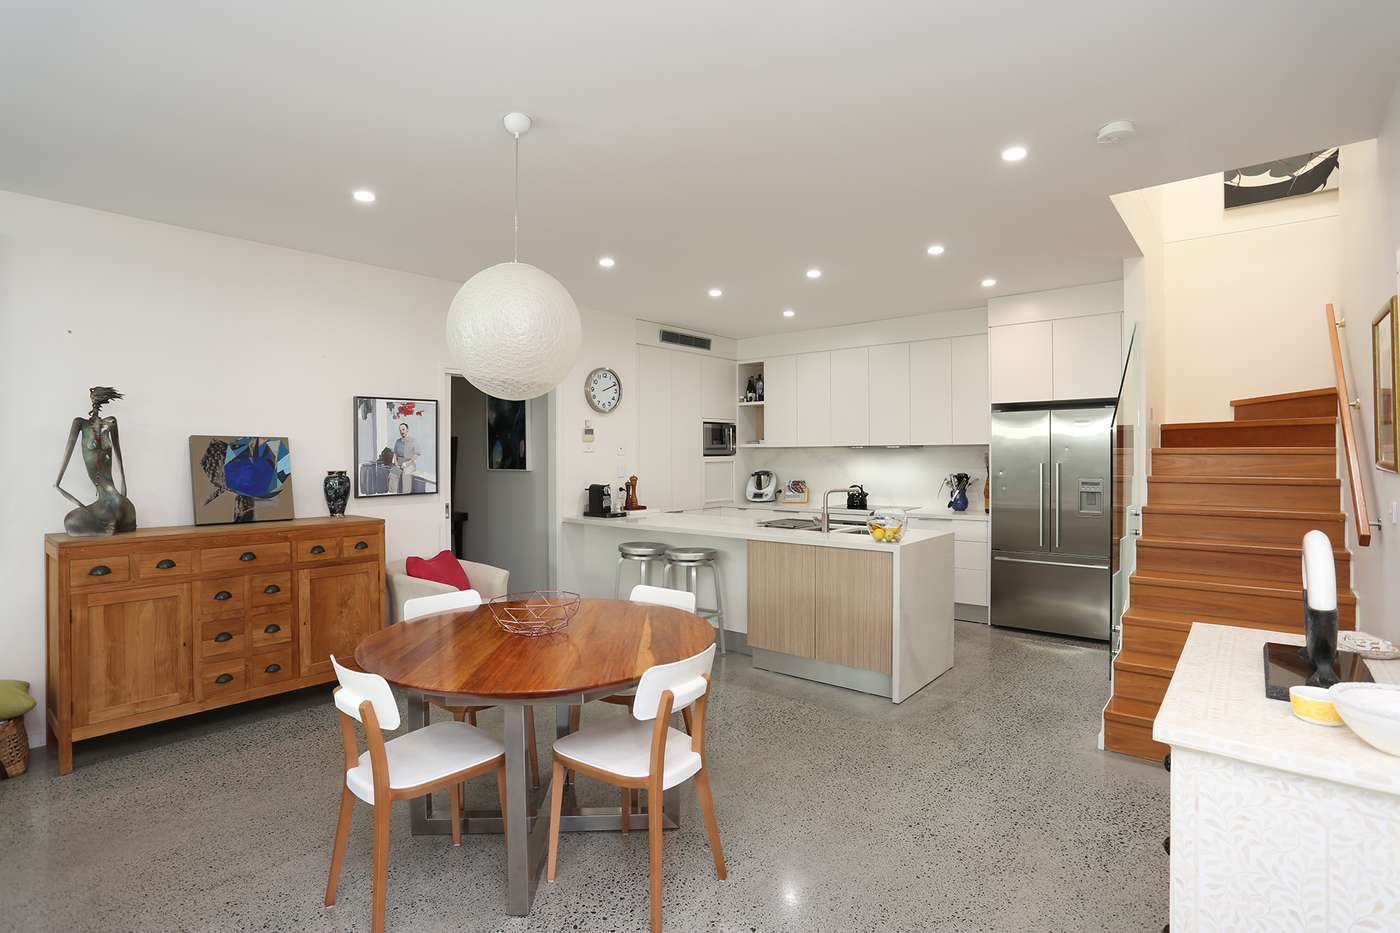 Main view of Homely house listing, 59 Waterline Crescent, Bulimba, QLD 4171